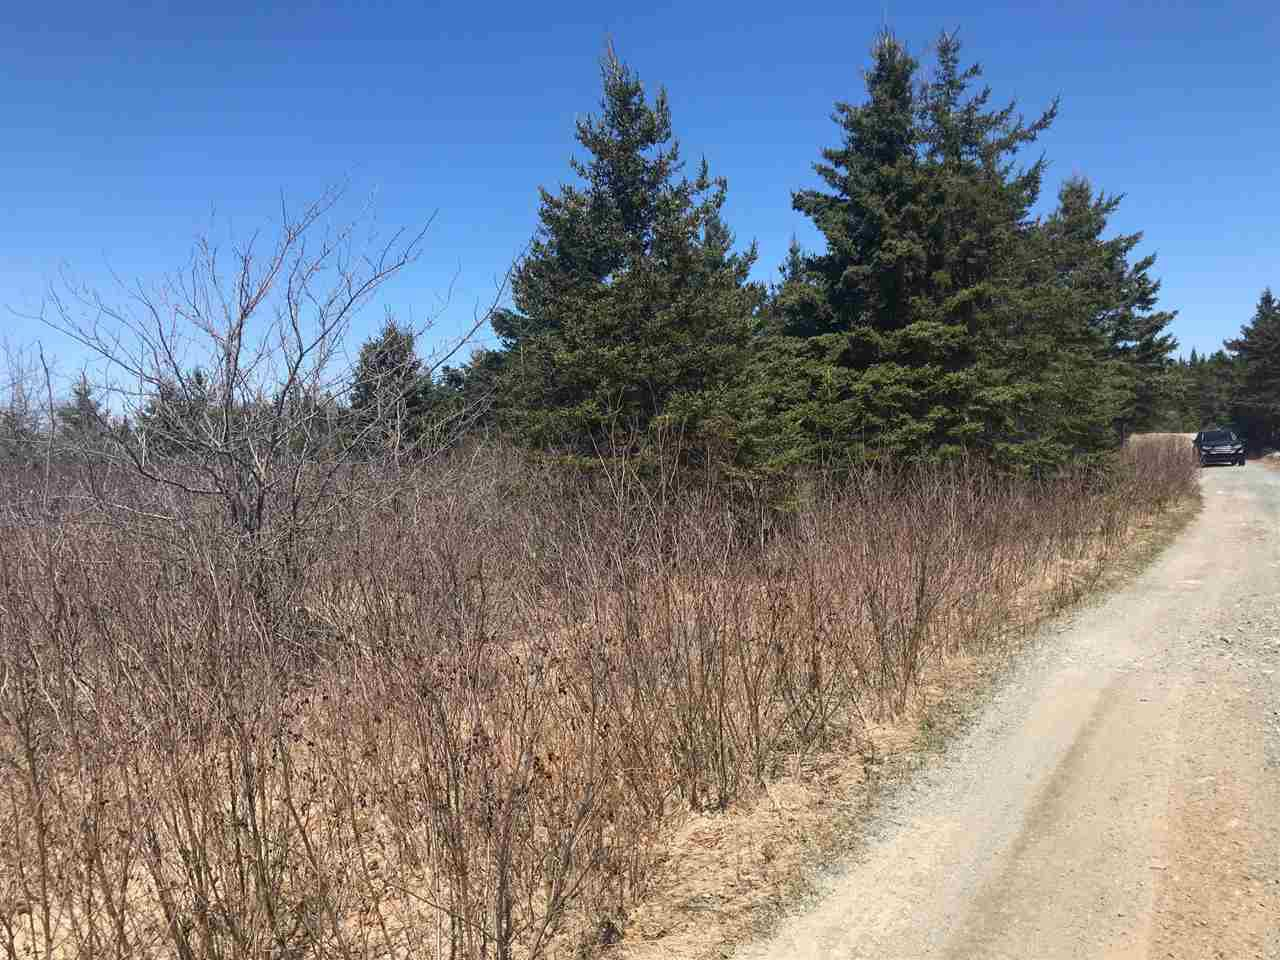 Photo 8: Photos: 11574 Highway 7 in Lake Charlotte: 35-Halifax County East Vacant Land for sale (Halifax-Dartmouth)  : MLS®# 201927372